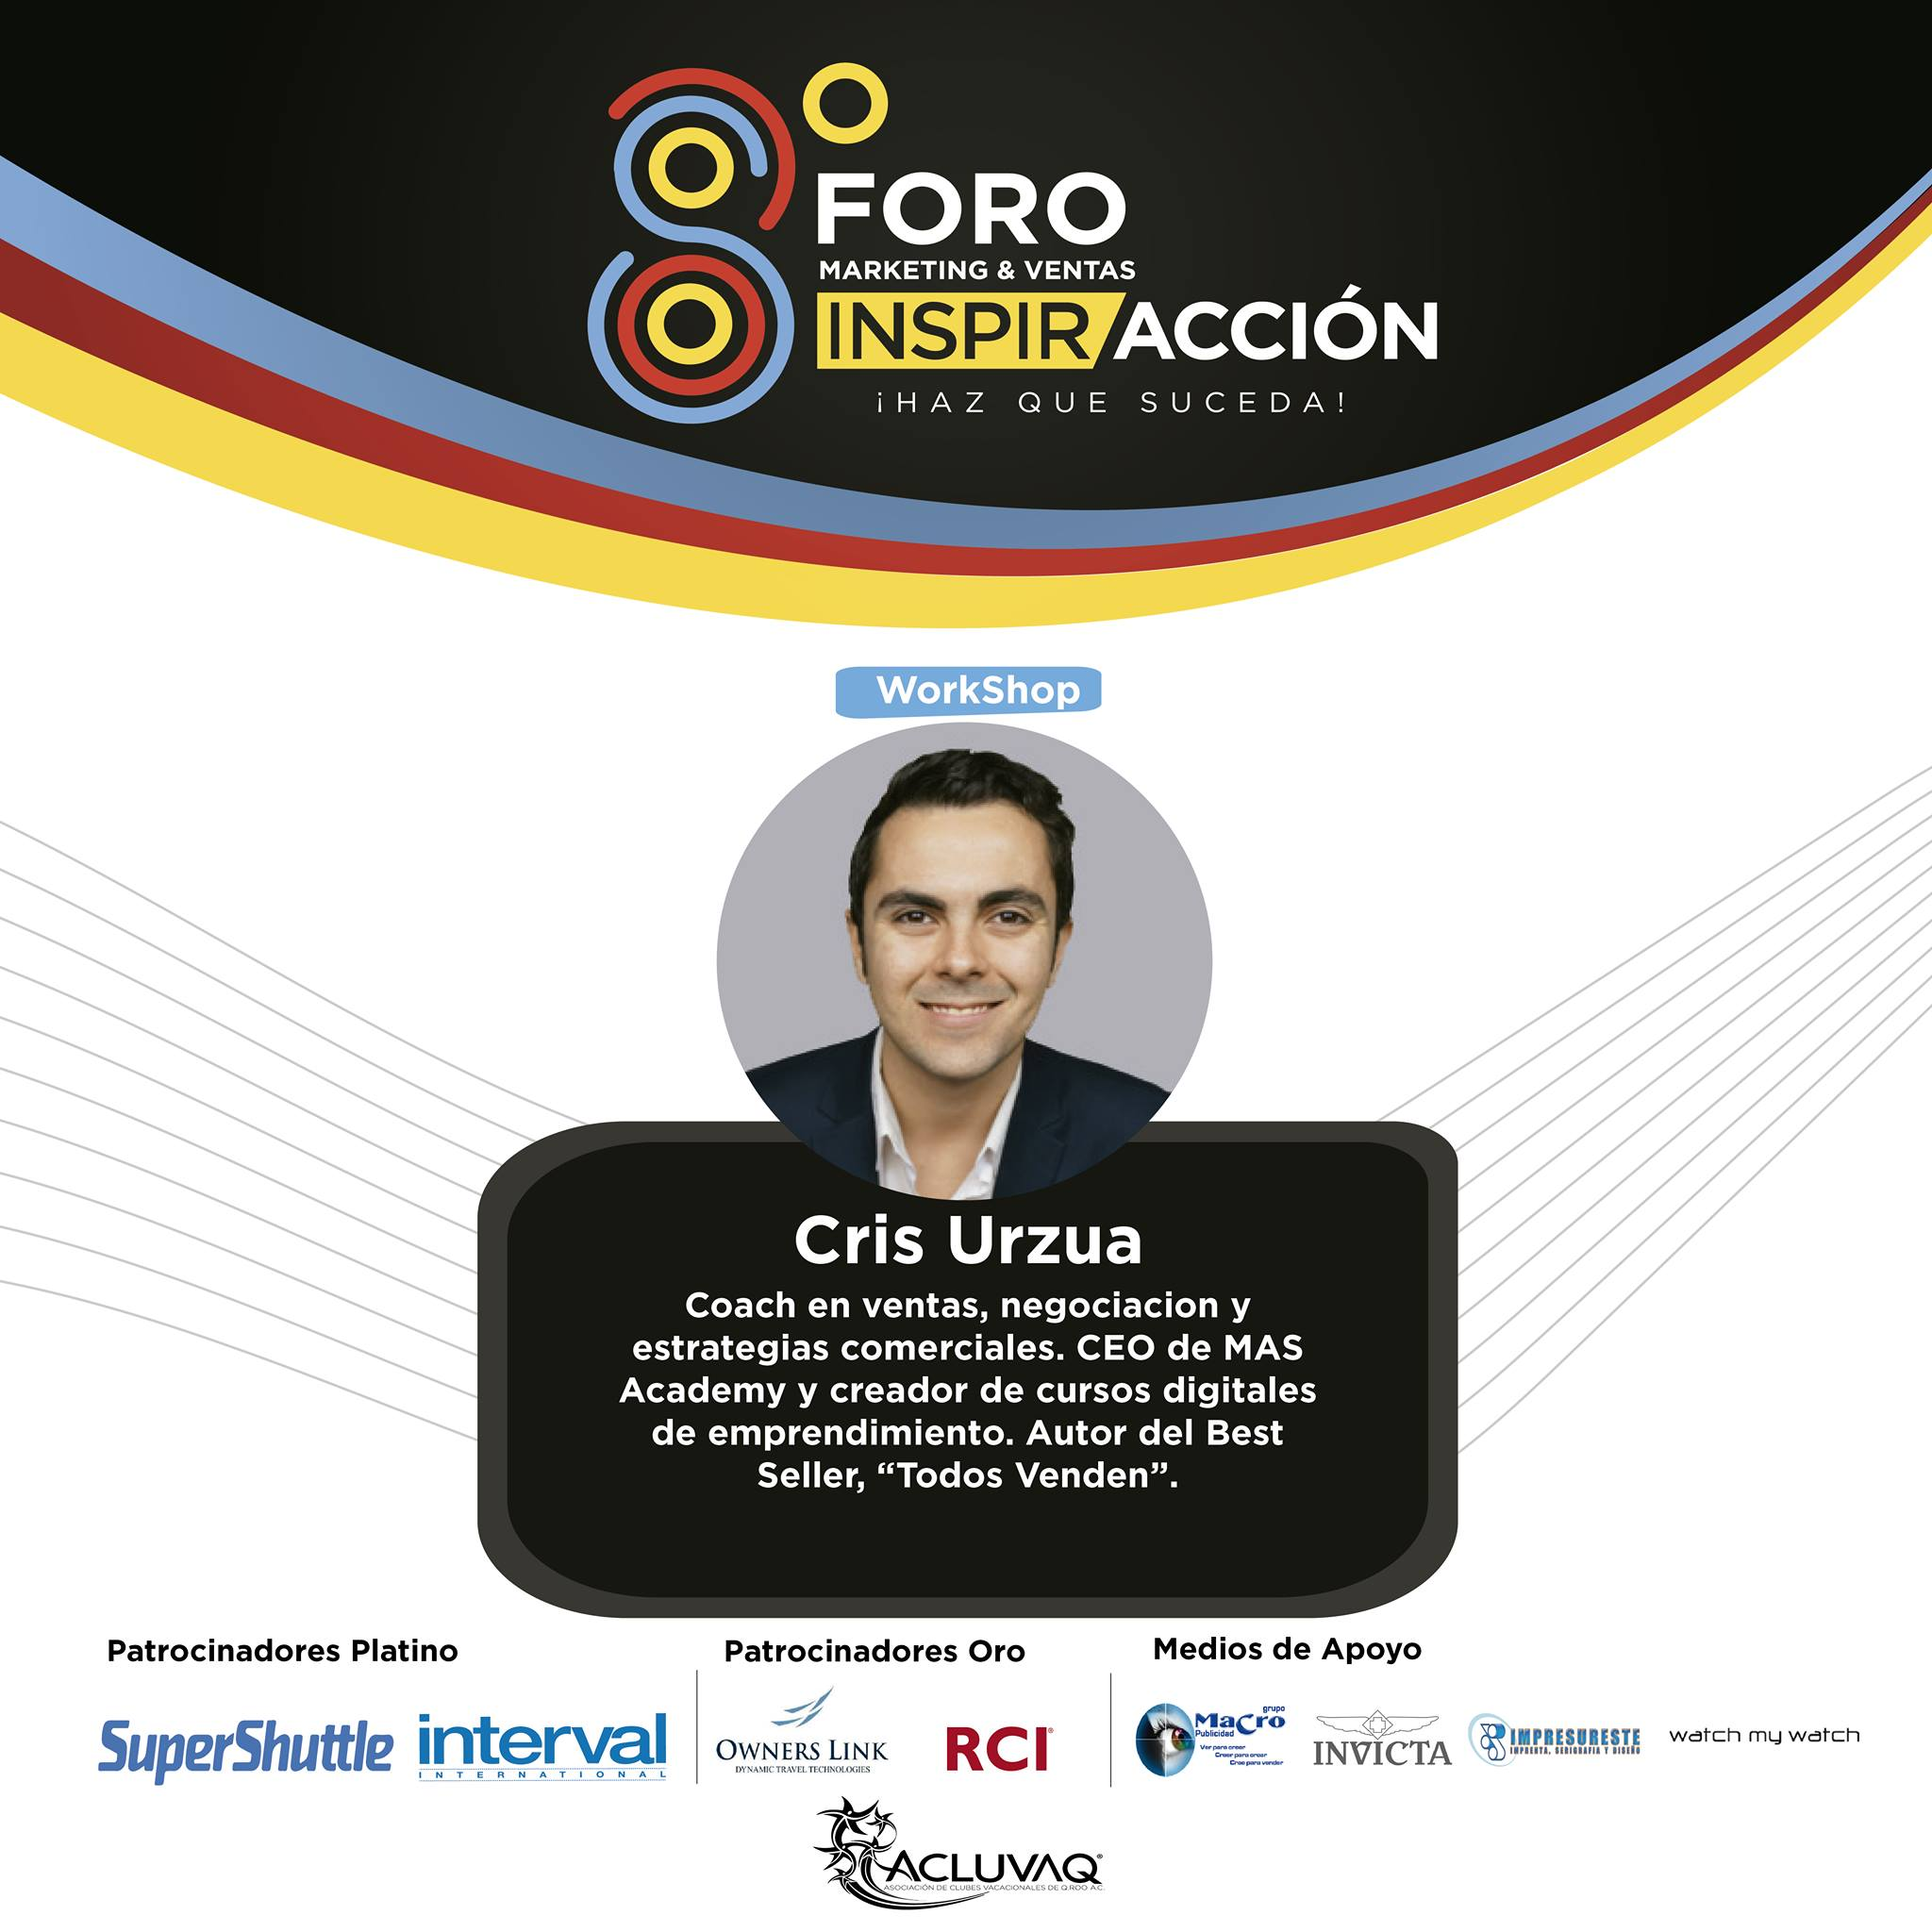 foro-marketing-ventas-cancun-2018